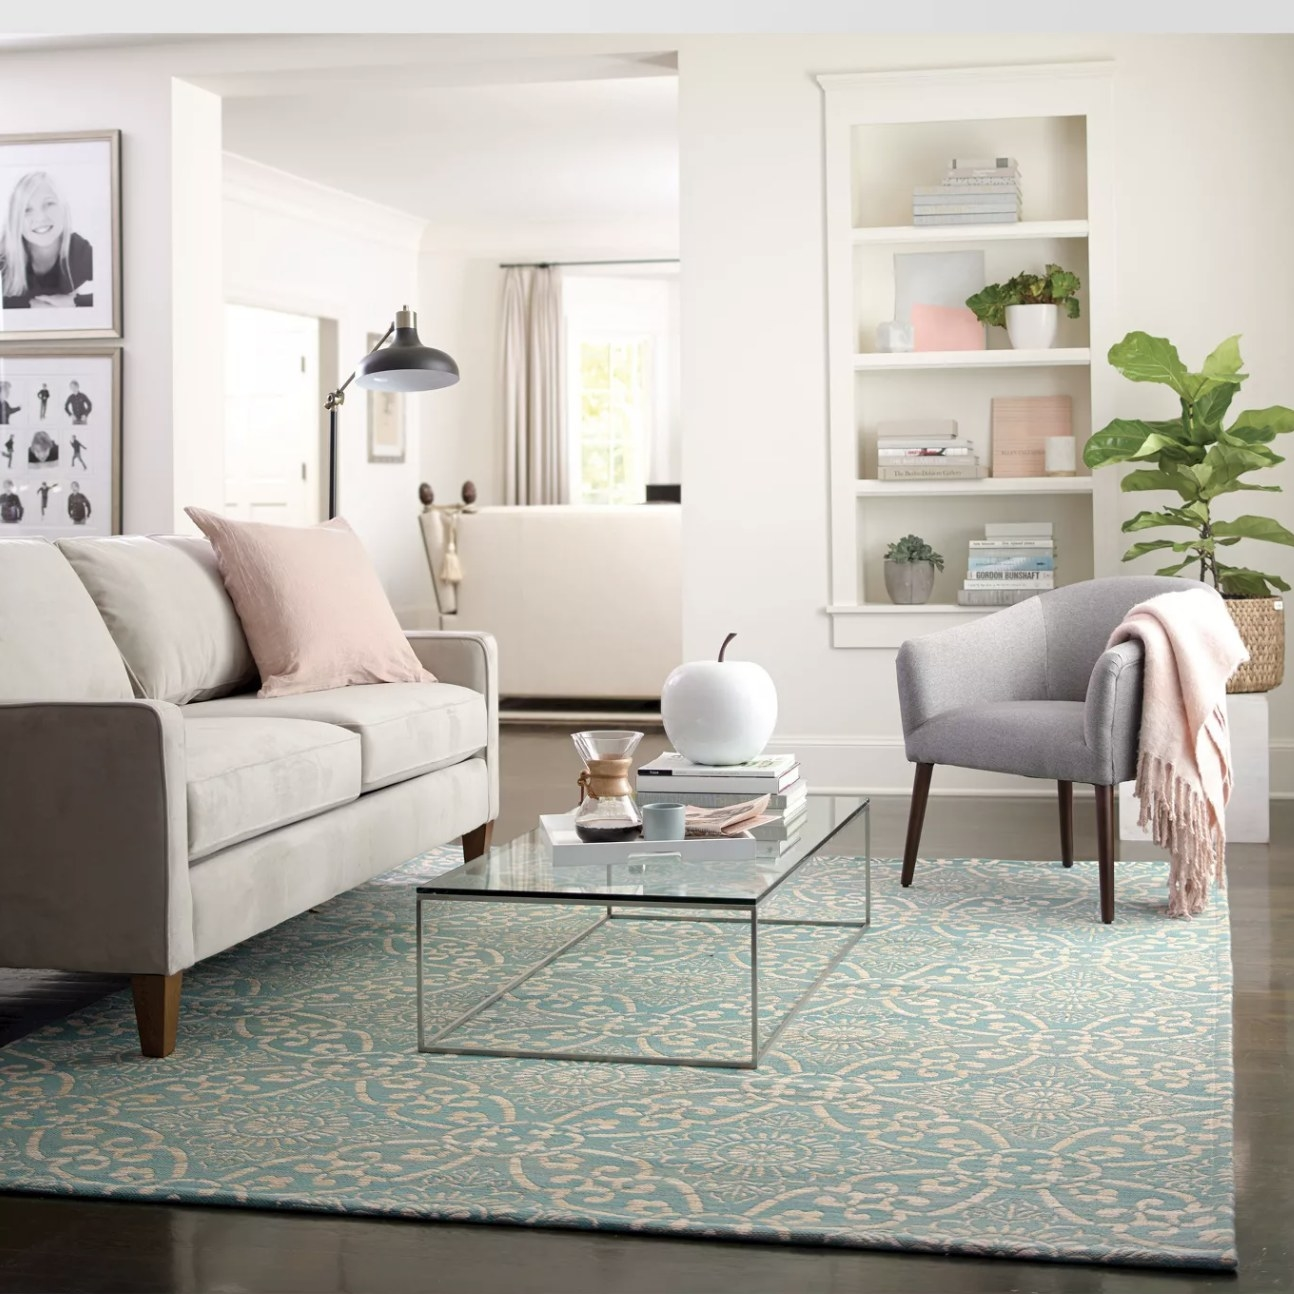 A light blue area rug in a living room